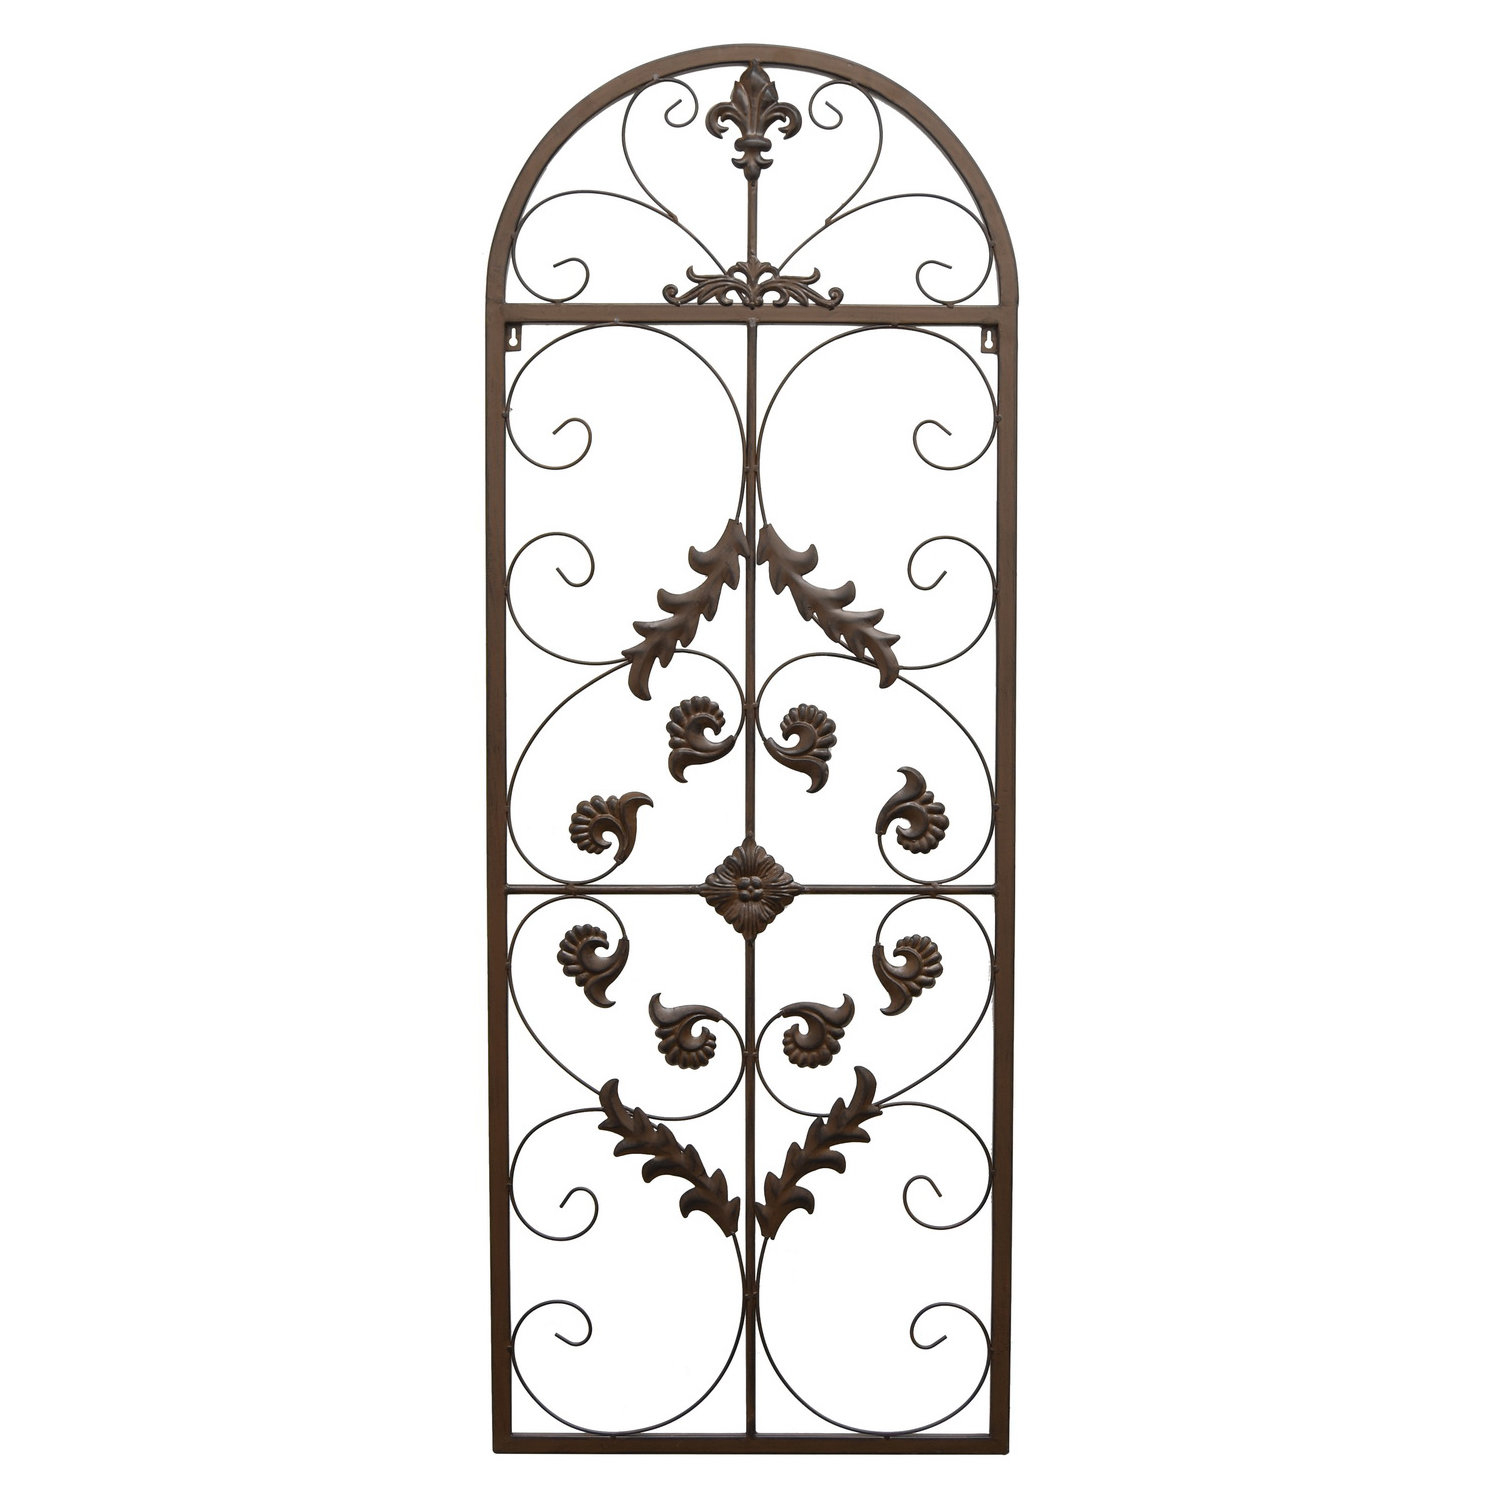 Scroll Wall Decor | Wayfair intended for Ornamental Wood And Metal Scroll Wall Decor (Image 21 of 30)